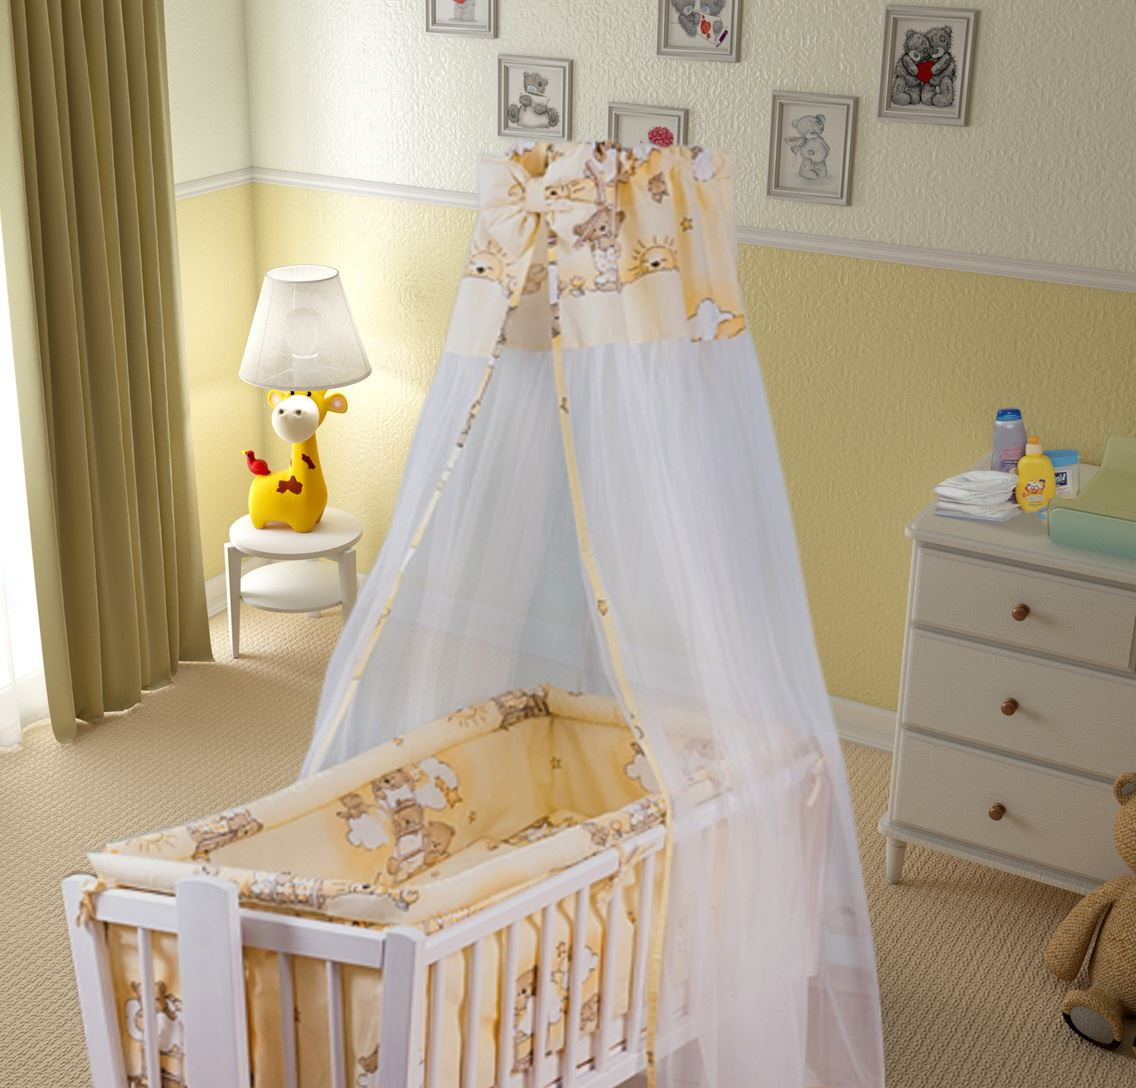 cradle swing on electric product swinging cribs buy baby com automatic crib bed alibaba detail